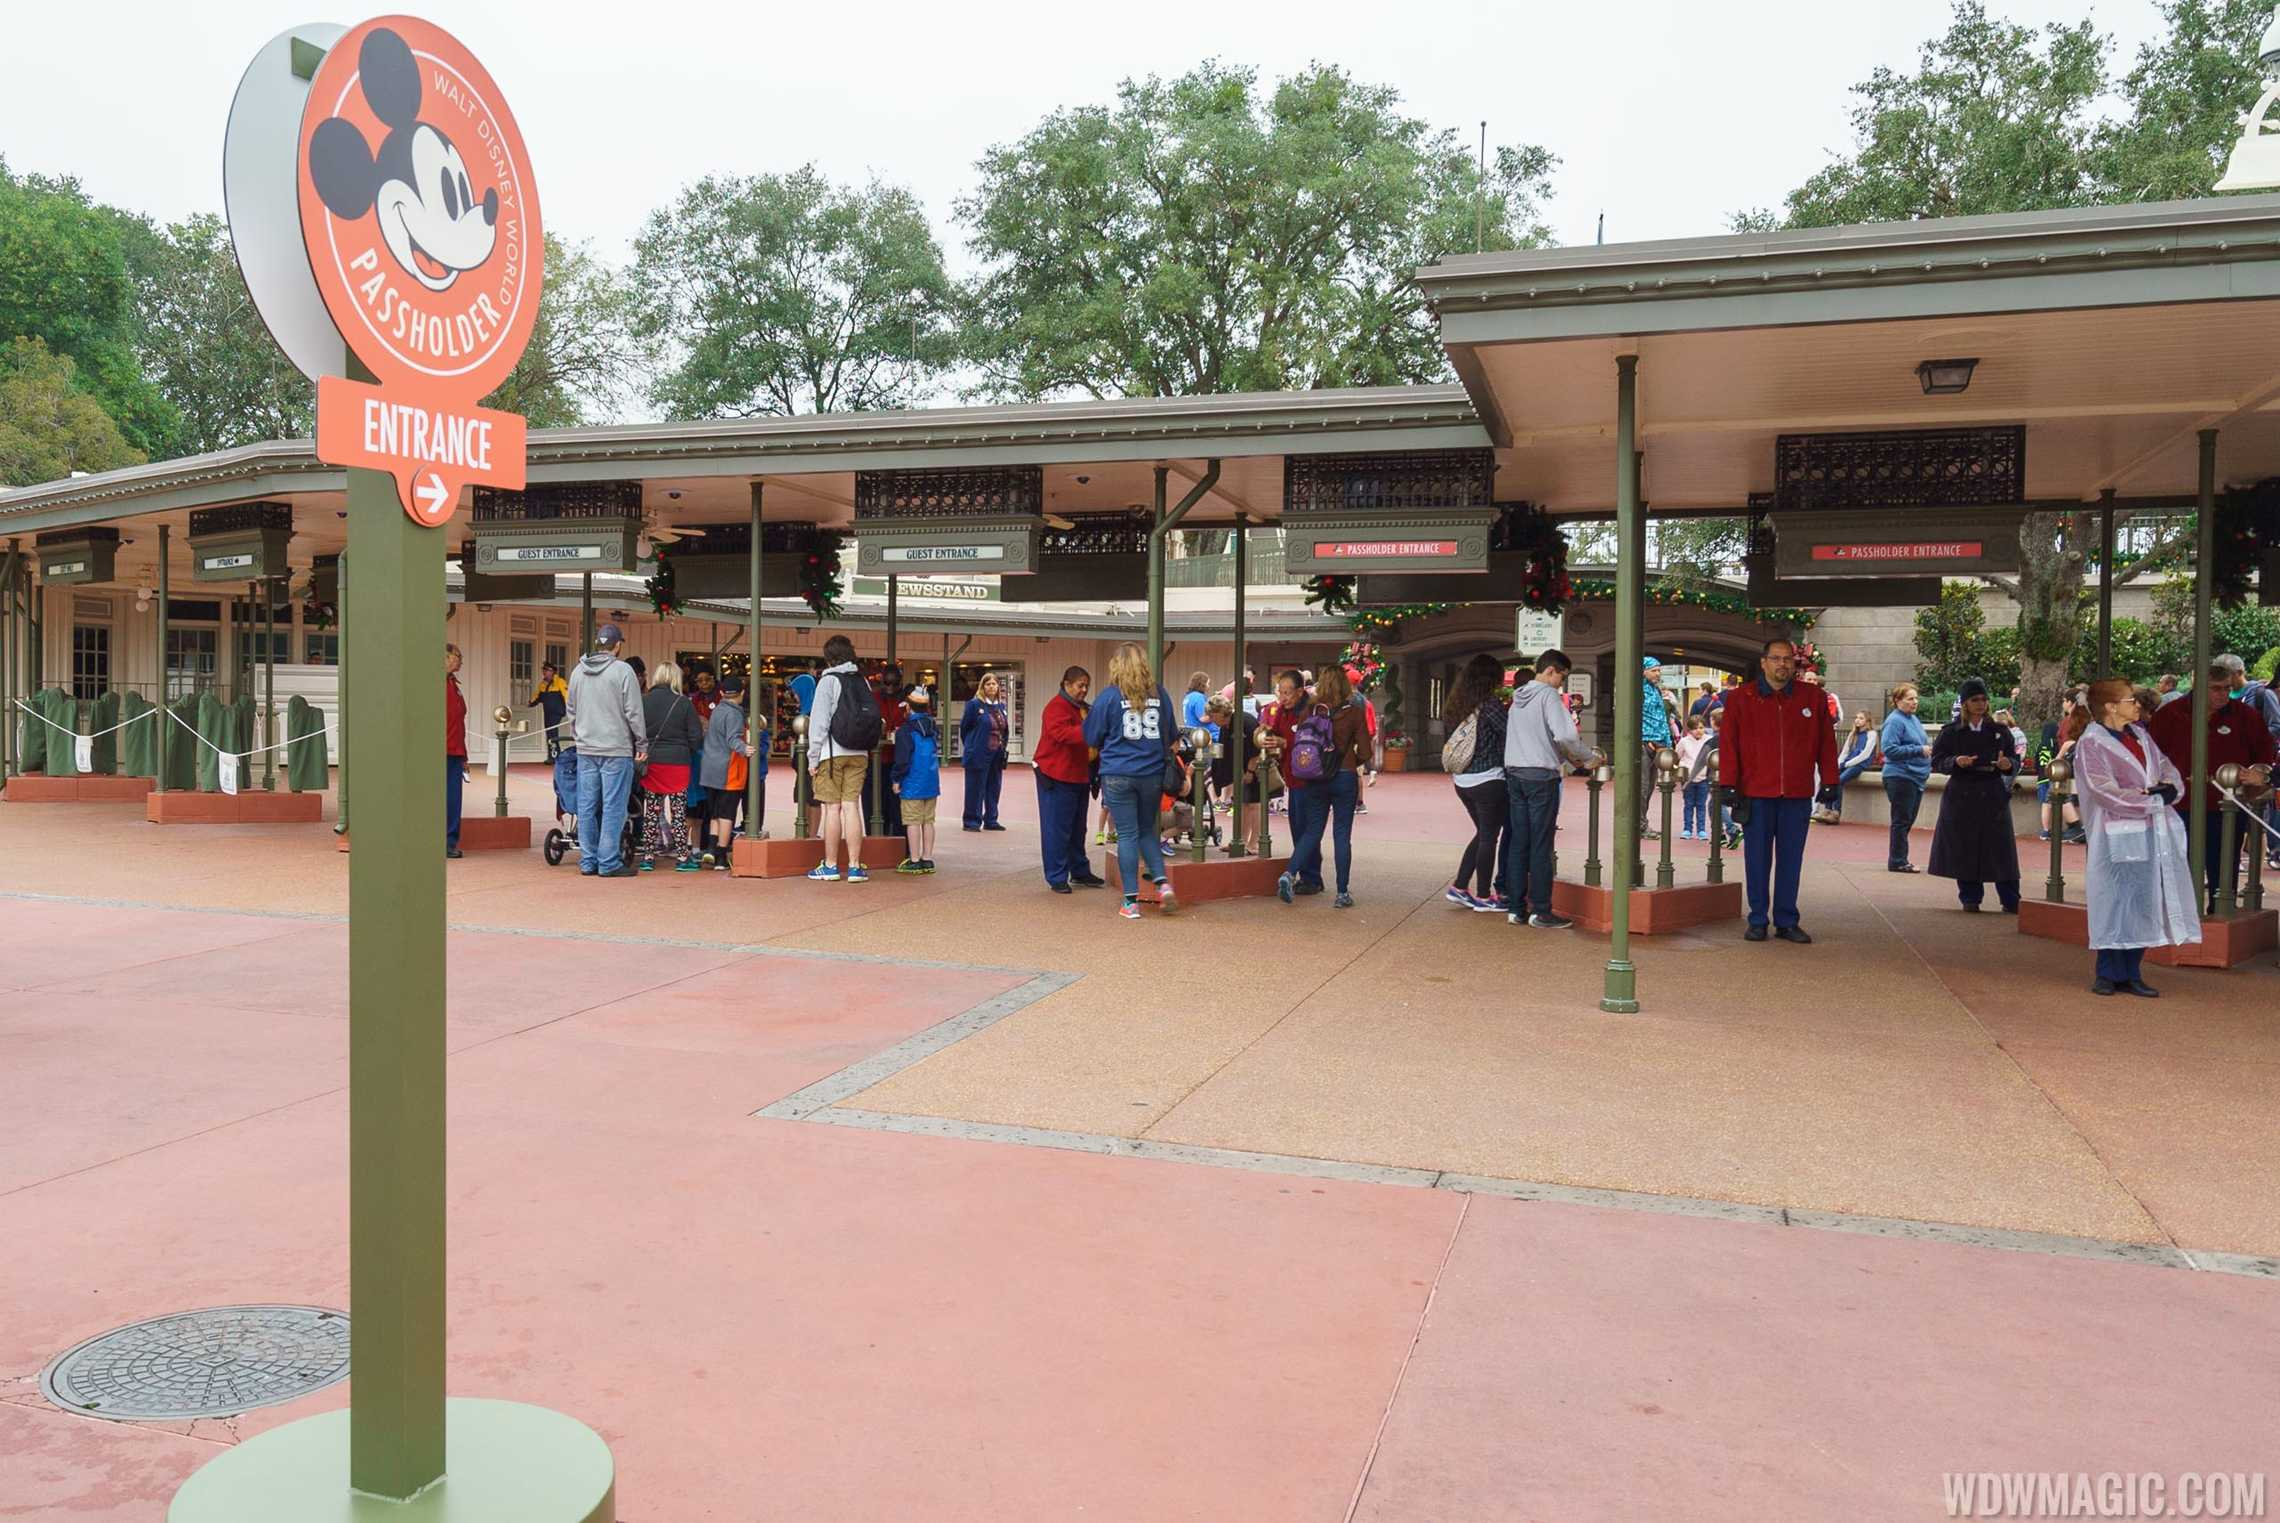 Florida residents have new annual pass option for Disney